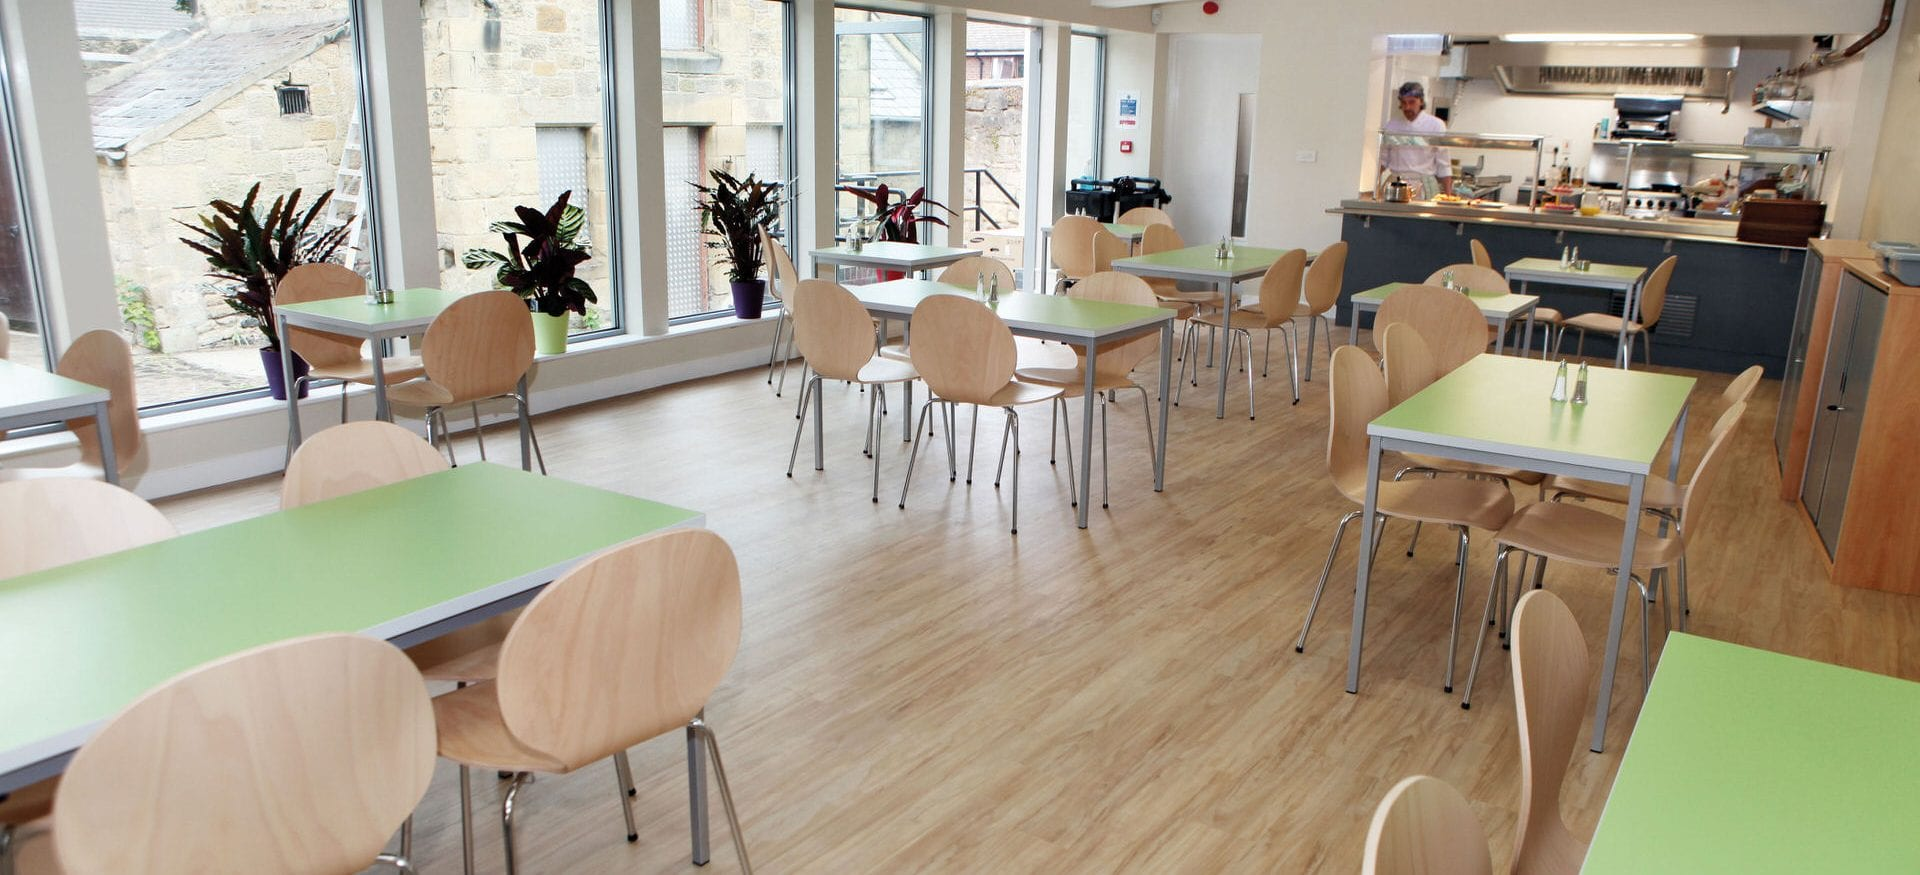 Alnwick Youth Hostel in Northumberland